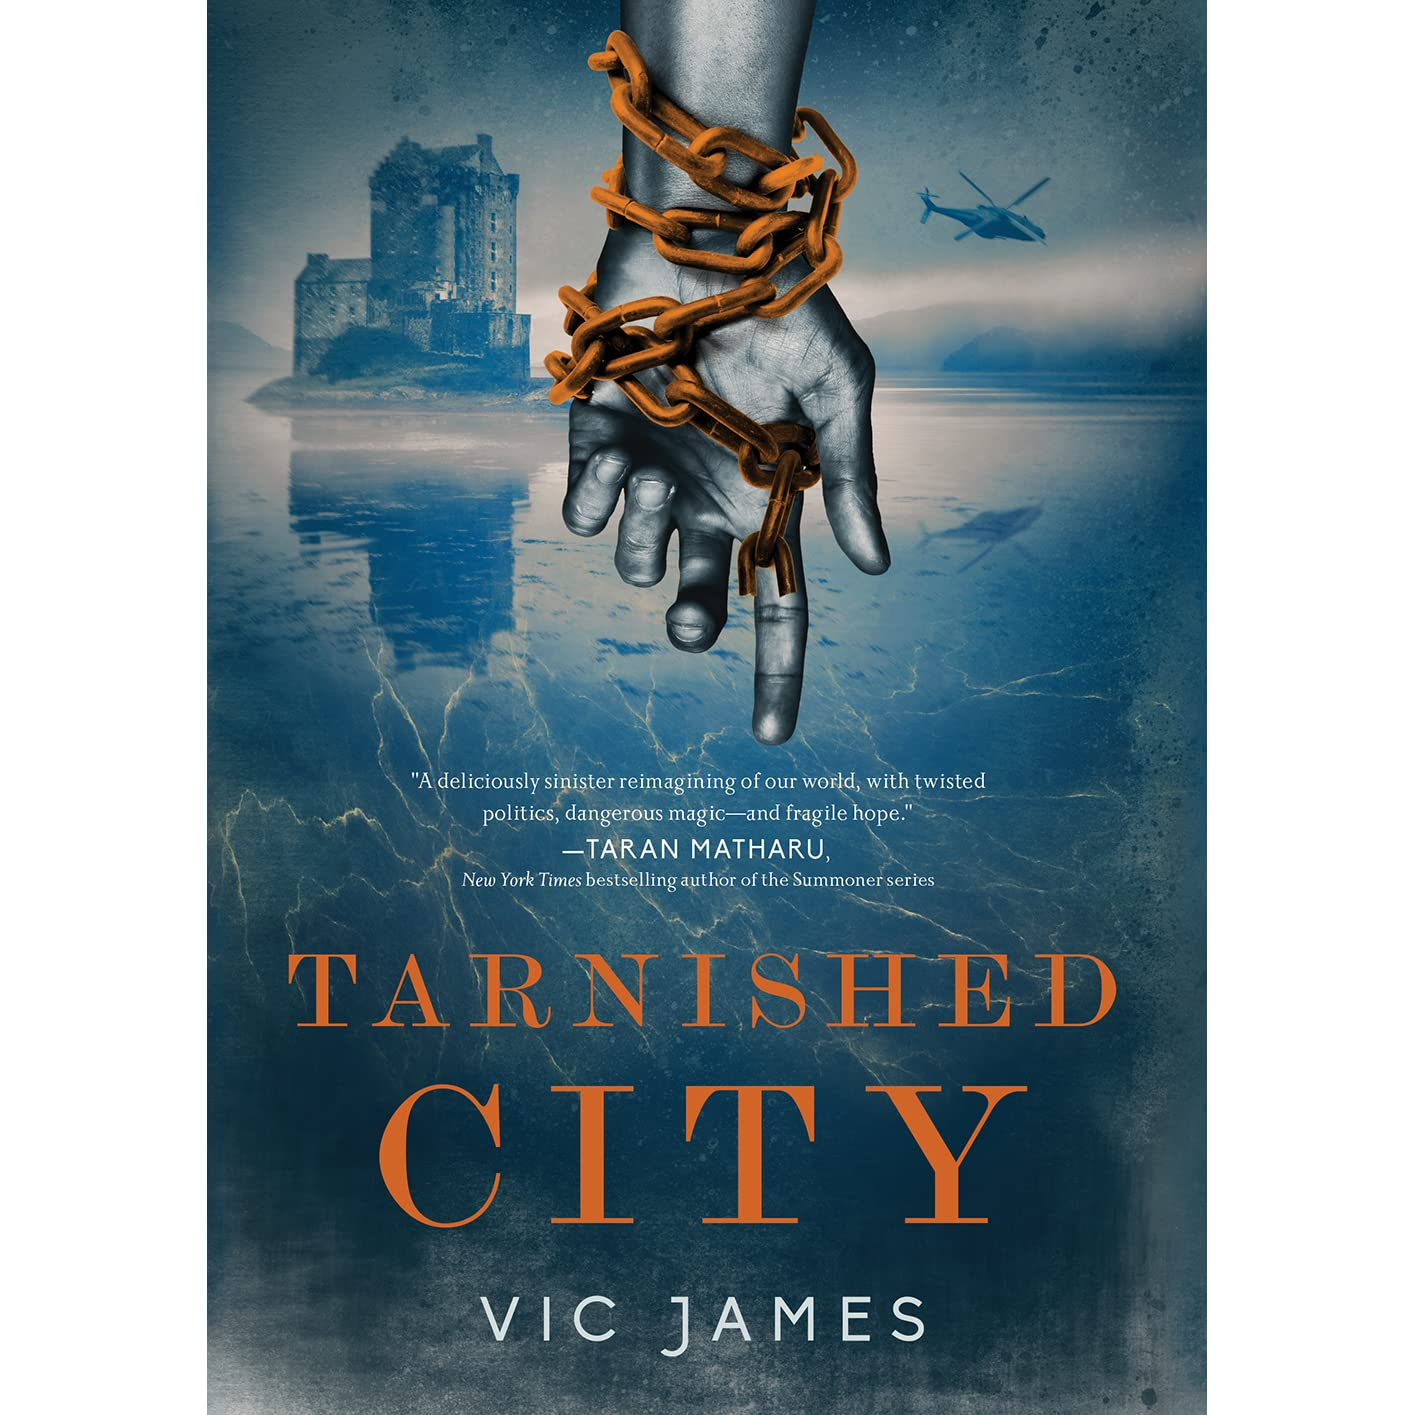 Tarnished City (Dark Gifts, #2) by Vic James